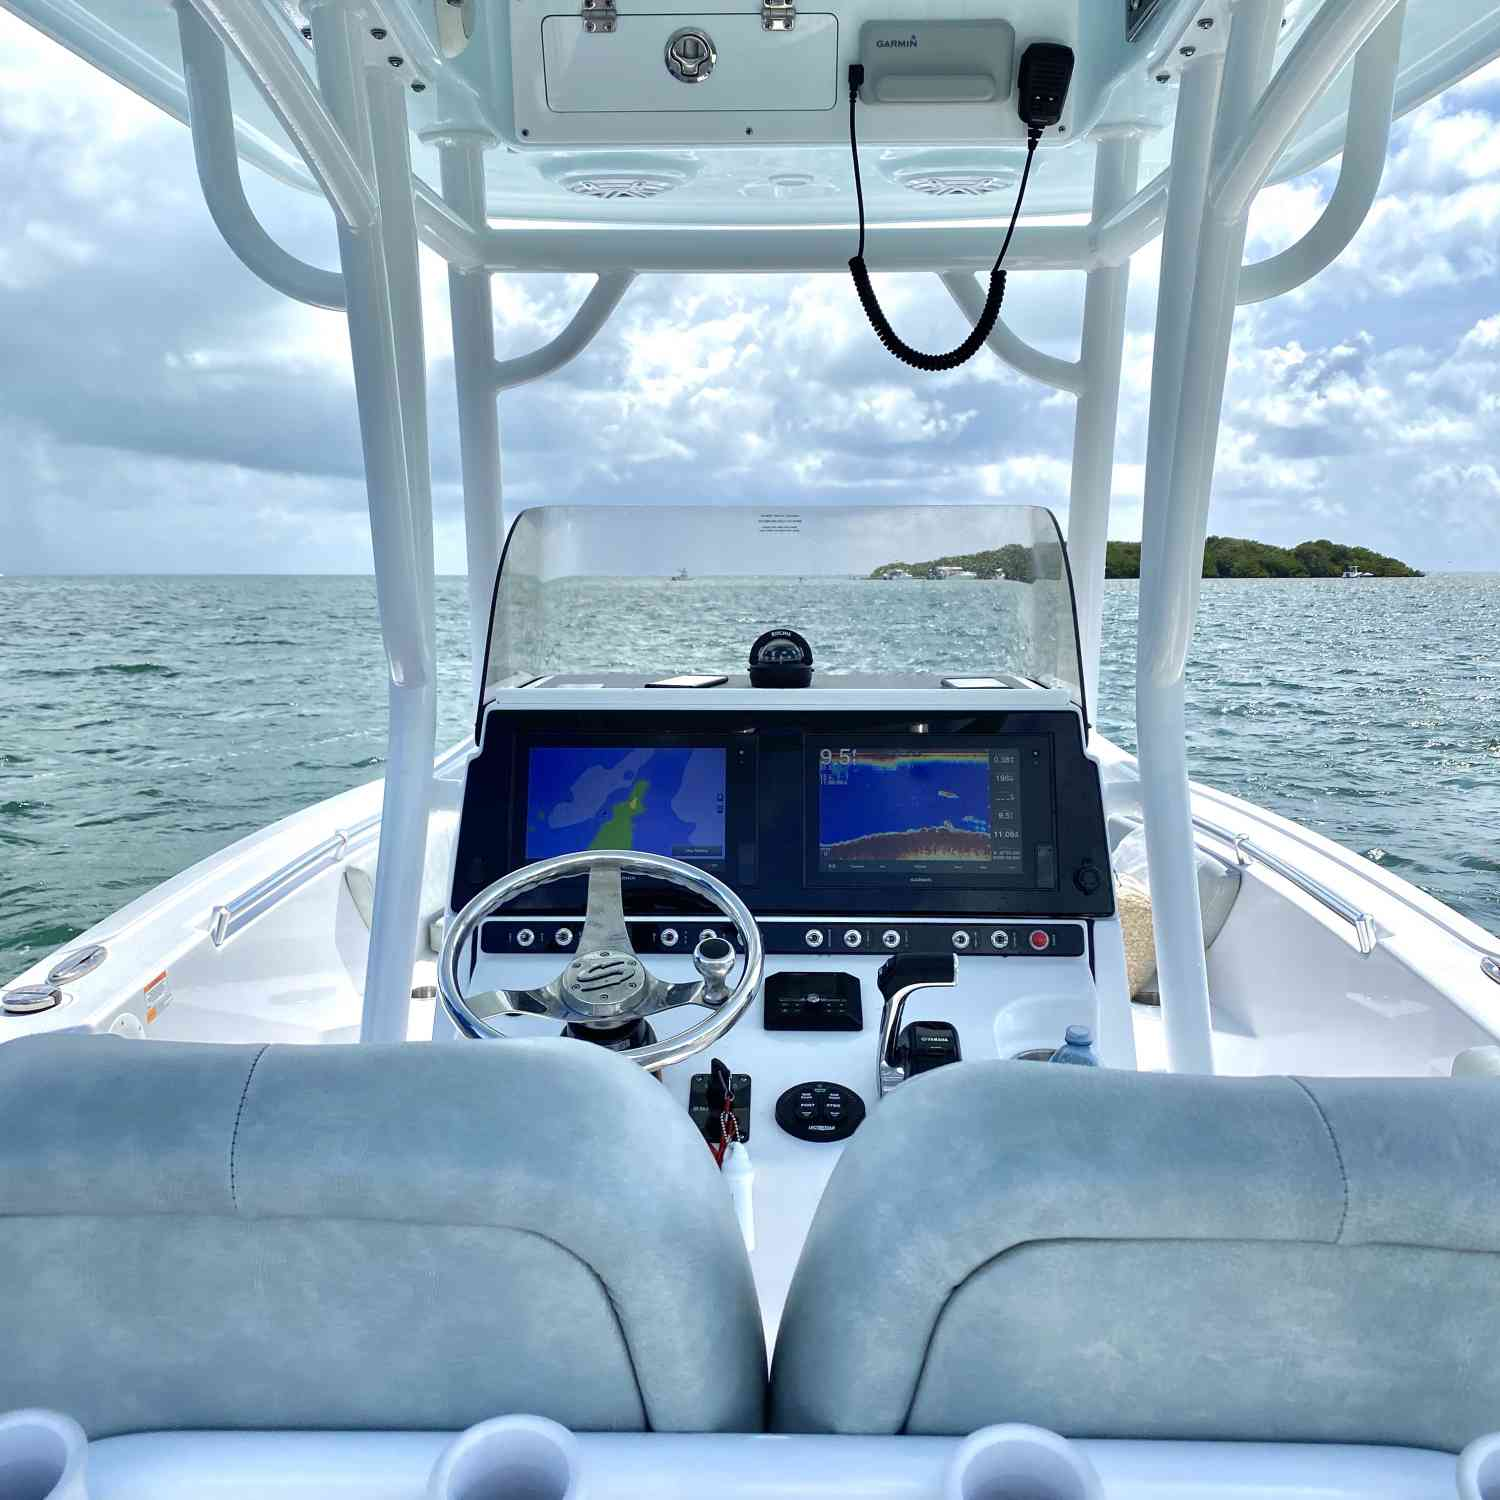 Title: The calm before the storm - On board their Sportsman Heritage 241 Center Console - Location: Miami, FL. Participating in the Photo Contest #SportsmanJune2020